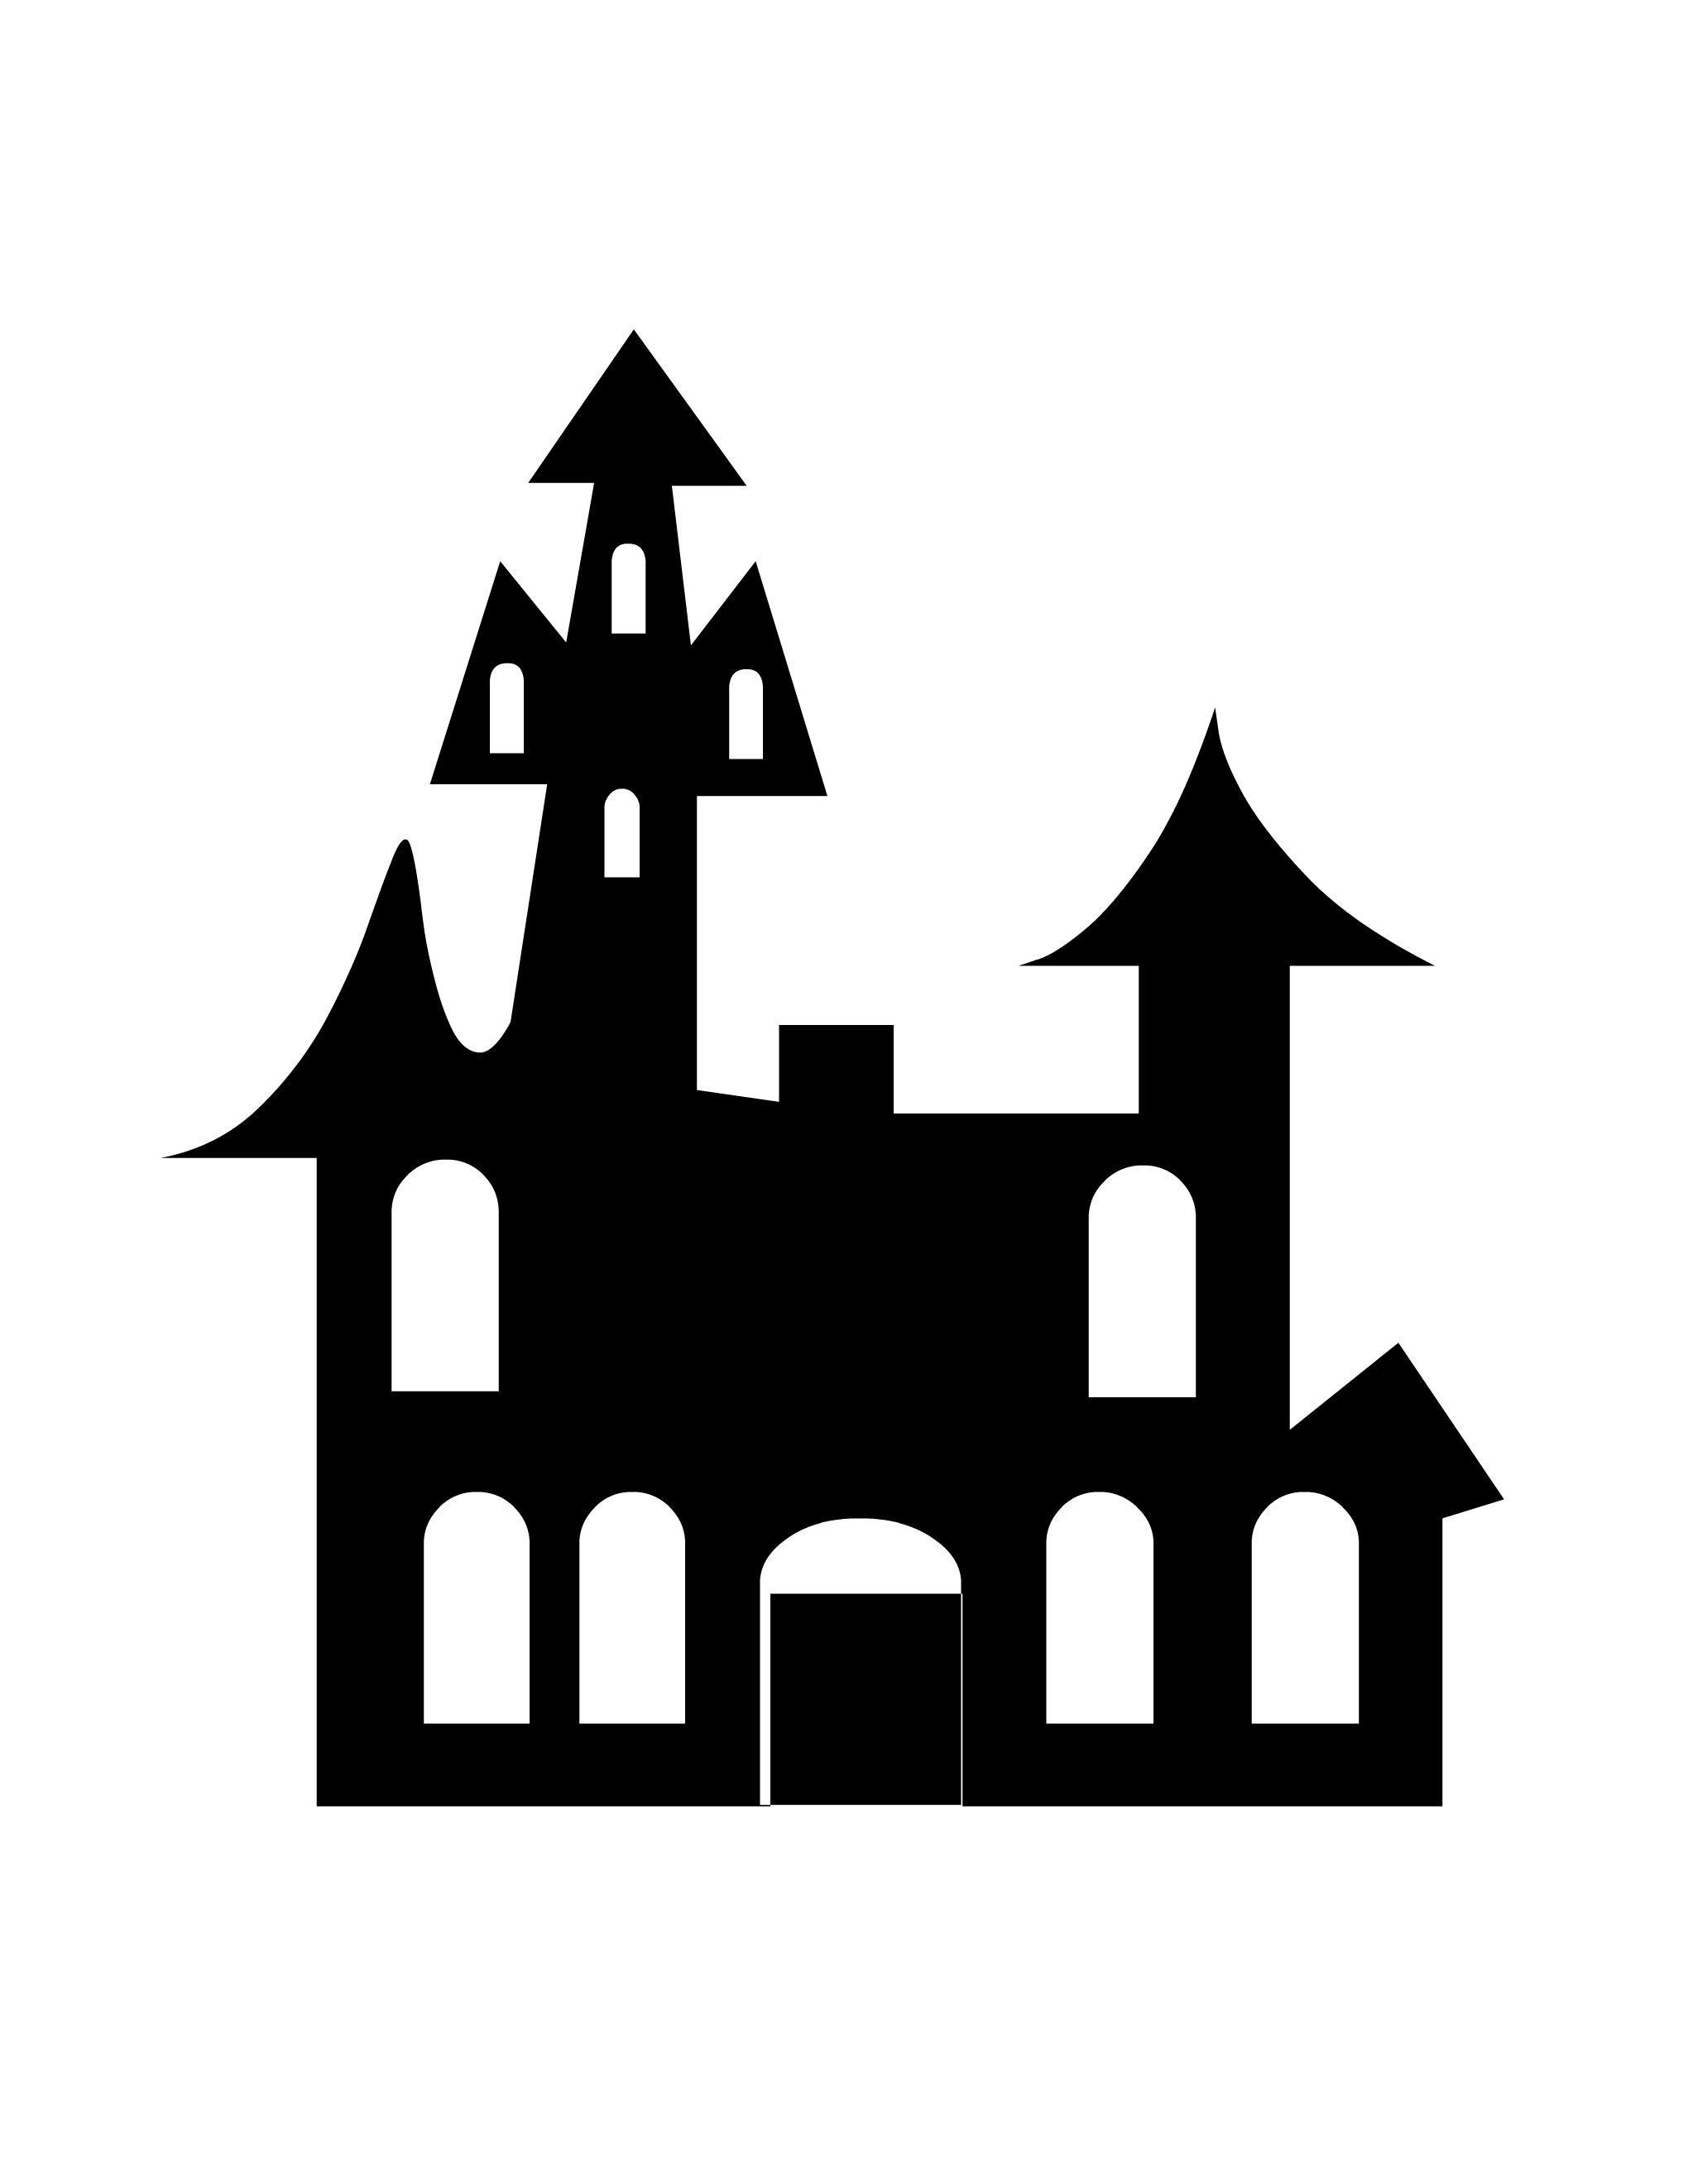 Haunted castle clipart black and white clipart royalty free stock Haunted Castle Clipart Black And White clipart royalty free stock